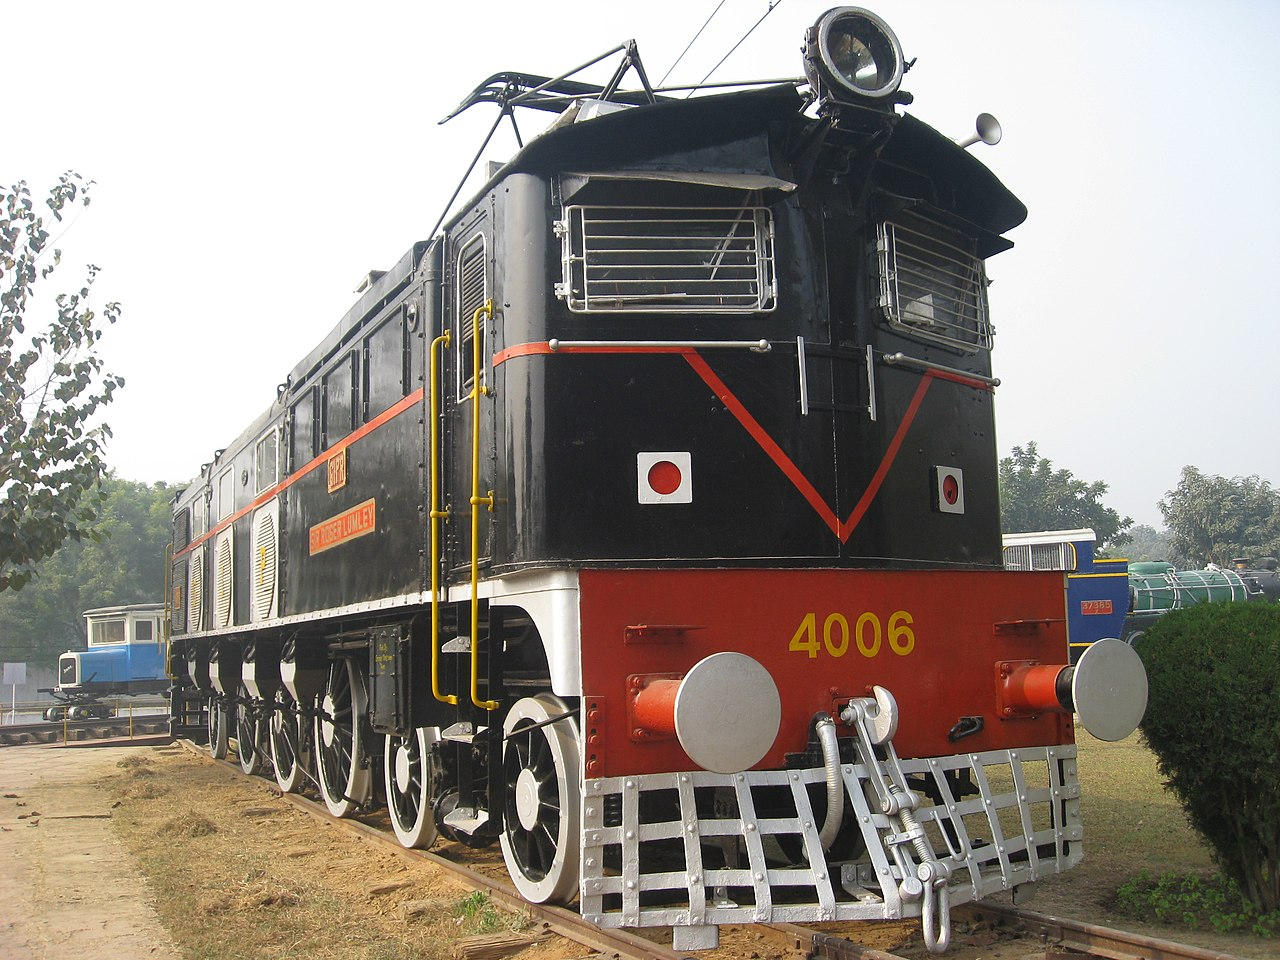 El juego de las imagenes-http://upload.wikimedia.org/wikipedia/commons/thumb/3/37/Delhi_Railway_Museum_Electric_locomotive_4006.jpg/1280px-Delhi_Railway_Museum_Electric_locomotive_4006.jpg